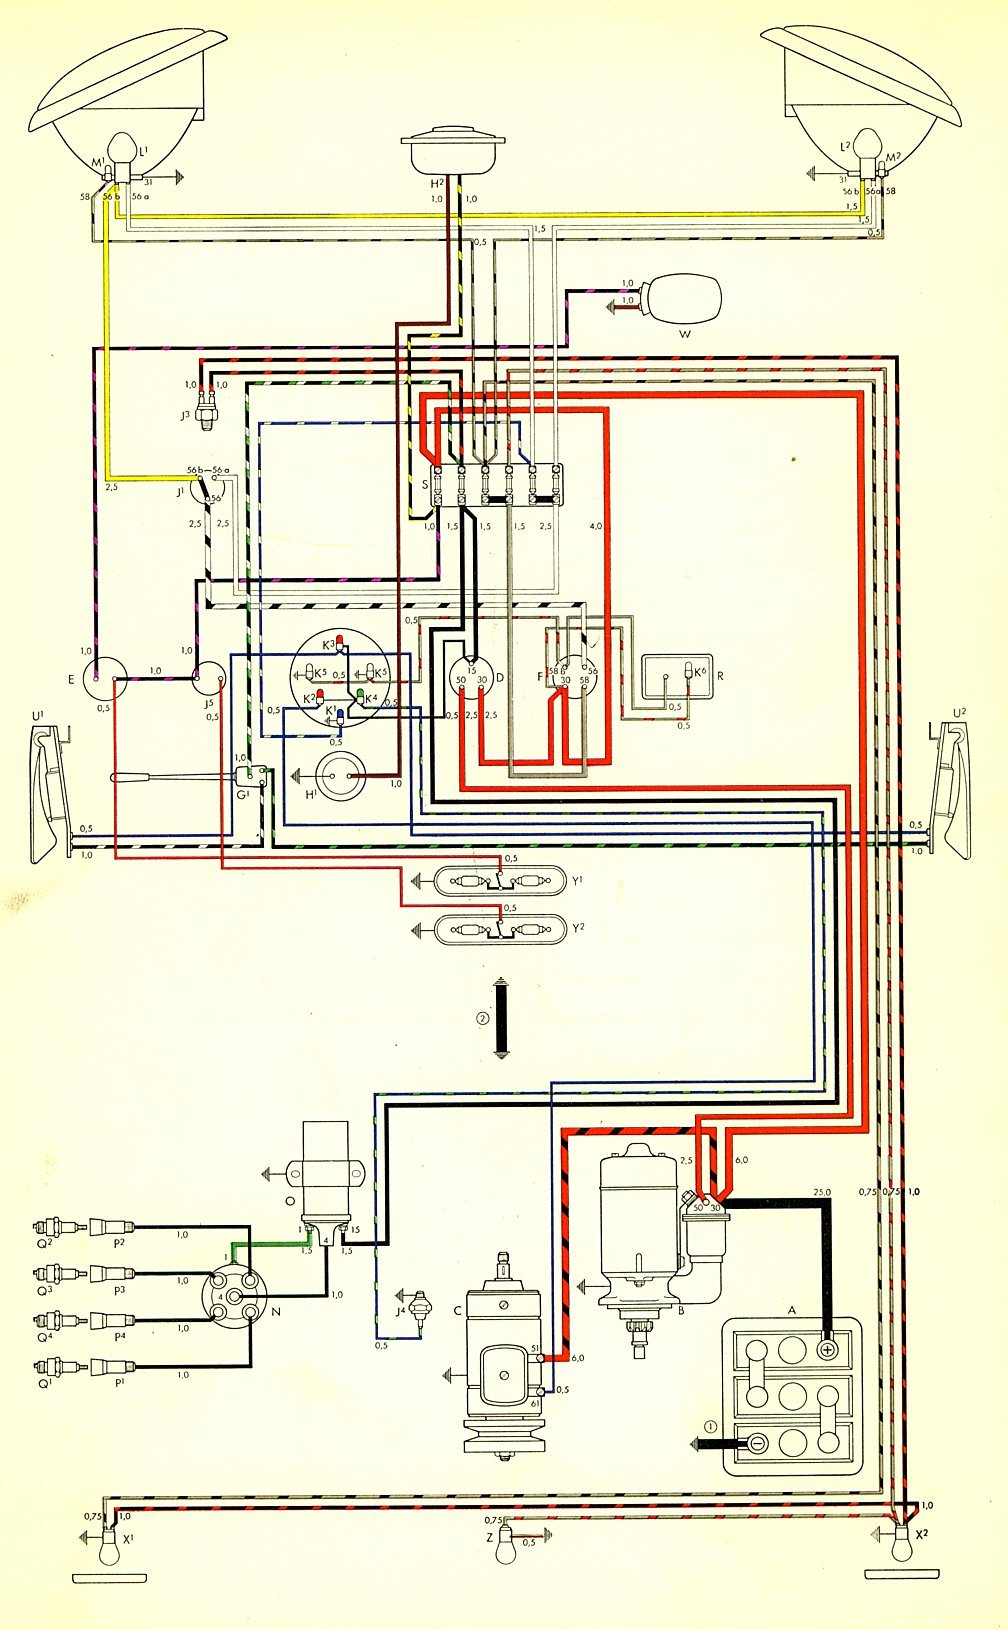 M2 Amu Wiring Diagram 1970 Vw Digram Opinions About Thesamba Com Type 2 Diagrams Rh 1965 Beetle